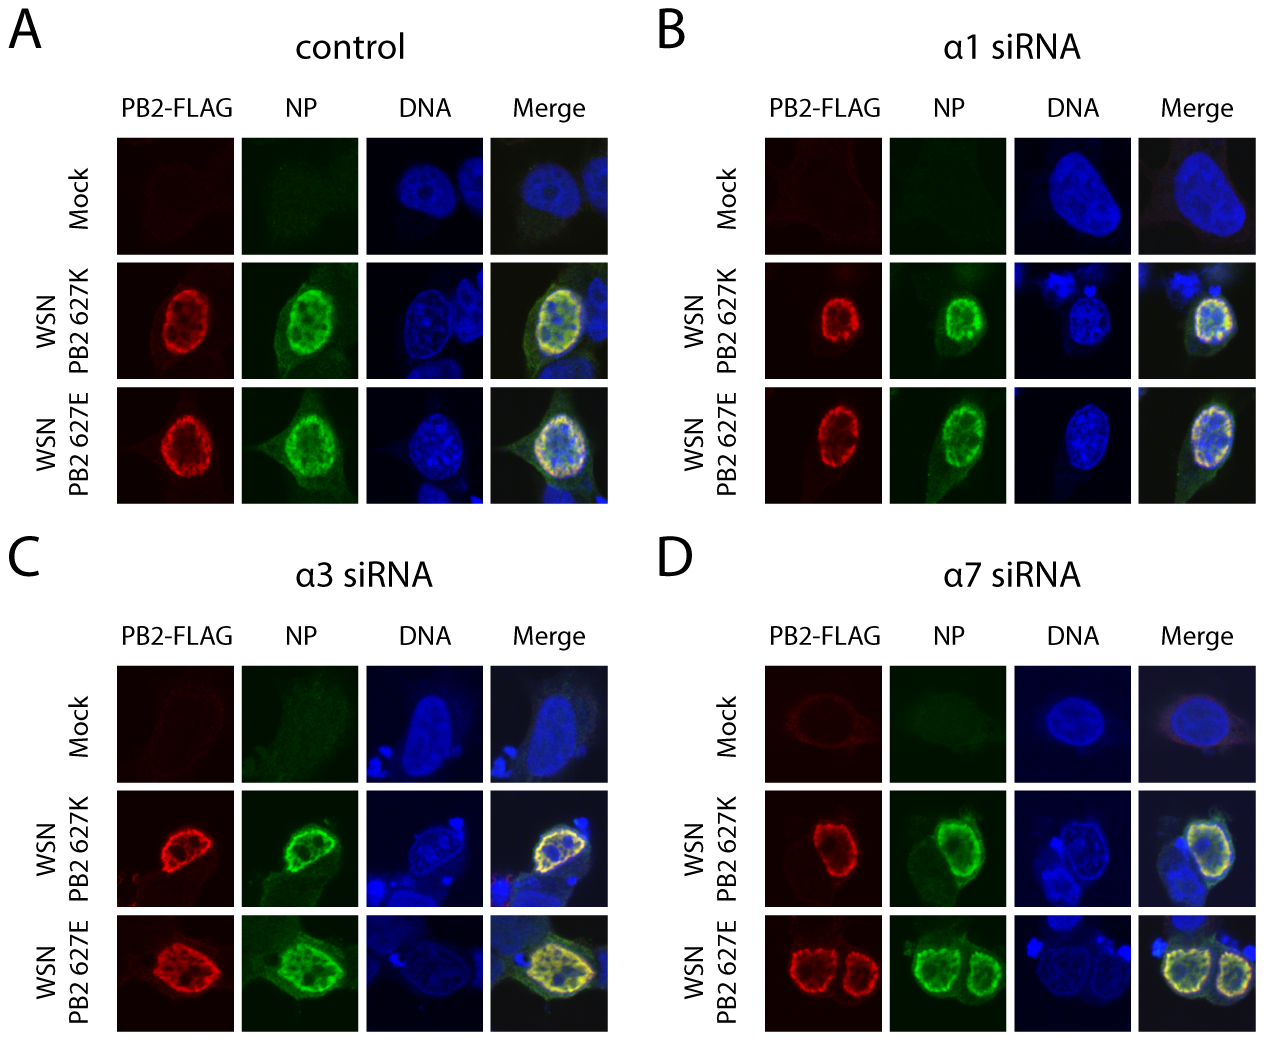 Importin-α silencing does not affect subcellular localization of PB2 or NP.